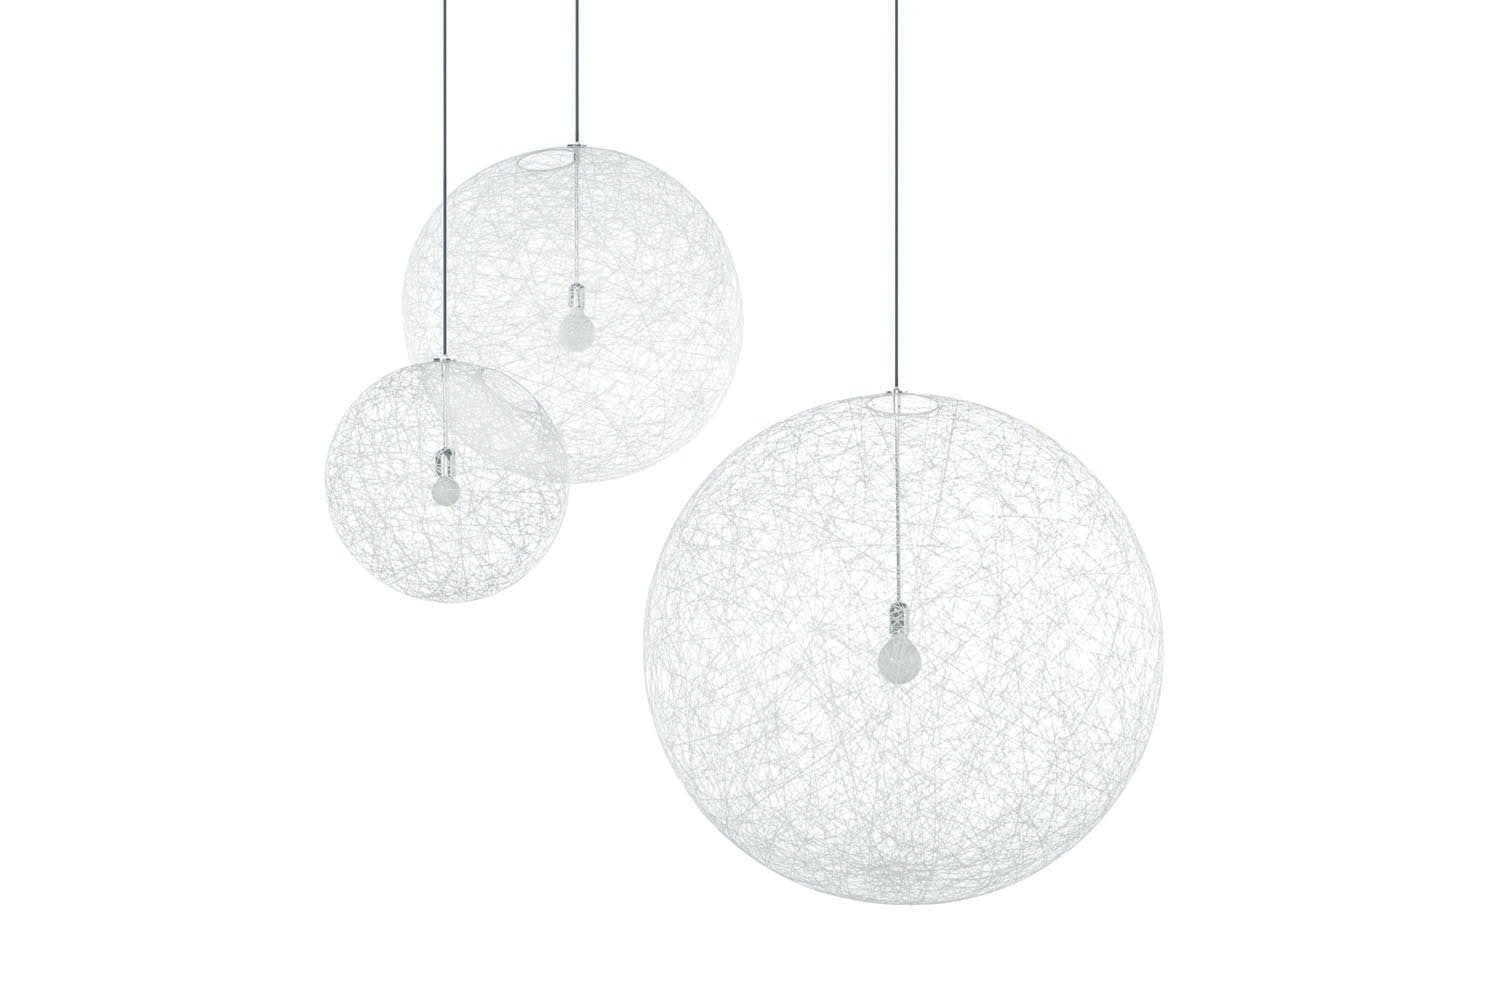 Random Light Small White Suspension Lamp by Bertjan Pot for Moooi